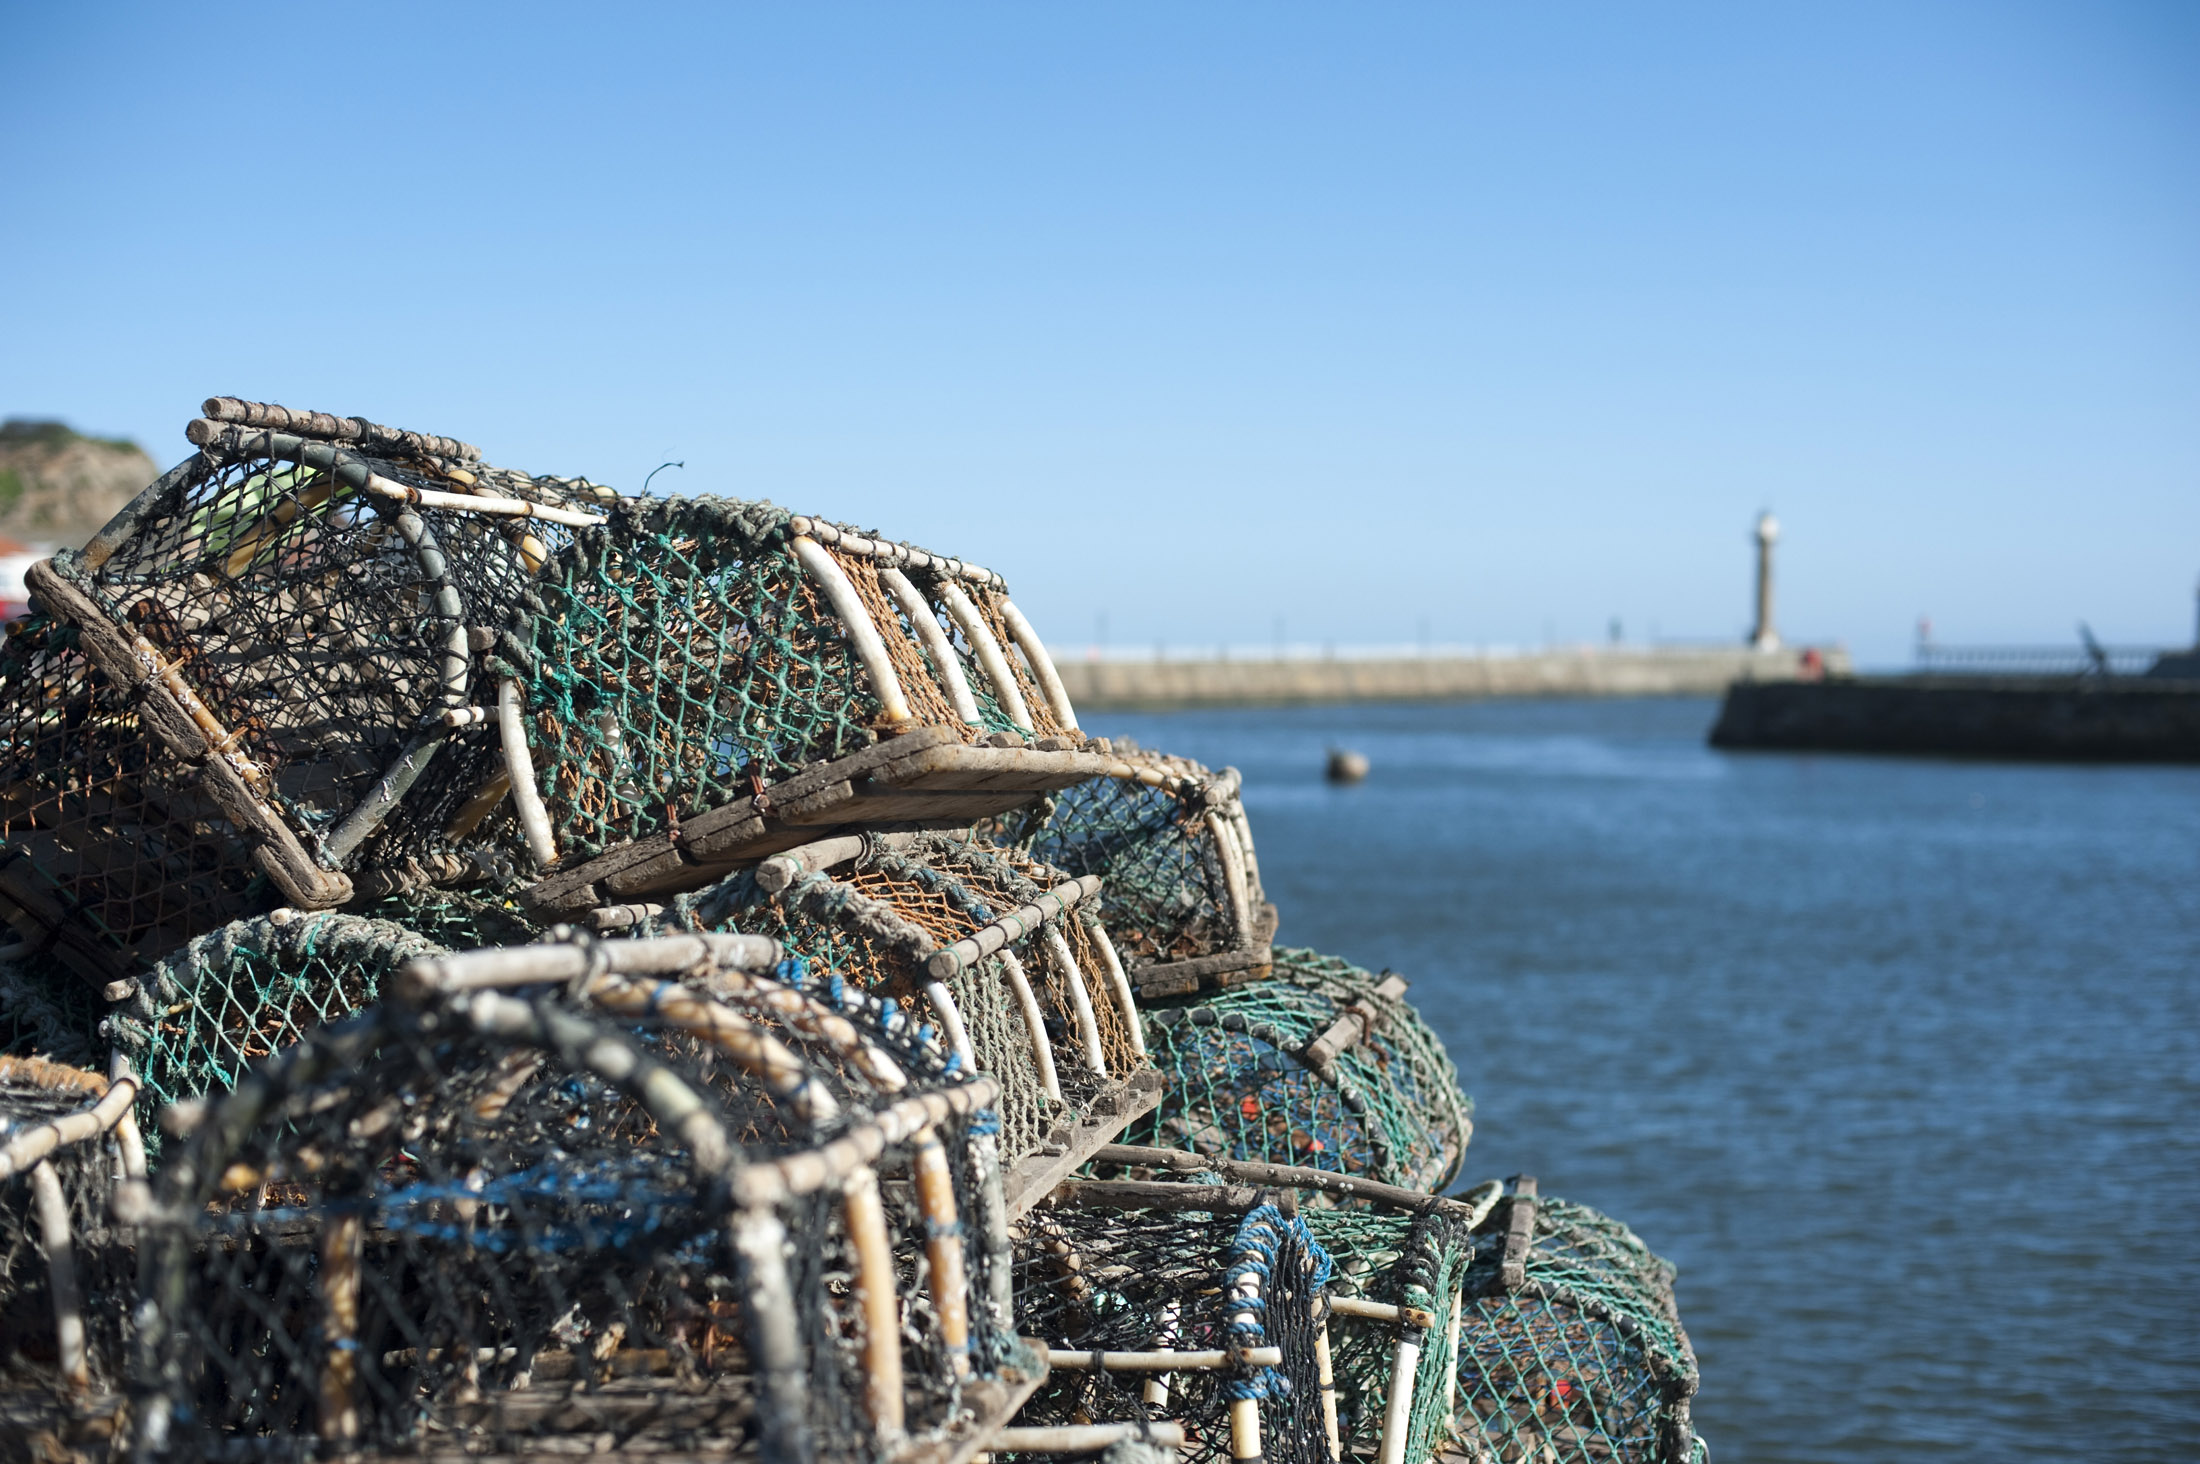 lobster or crab pots on the quayside in whitby harbor